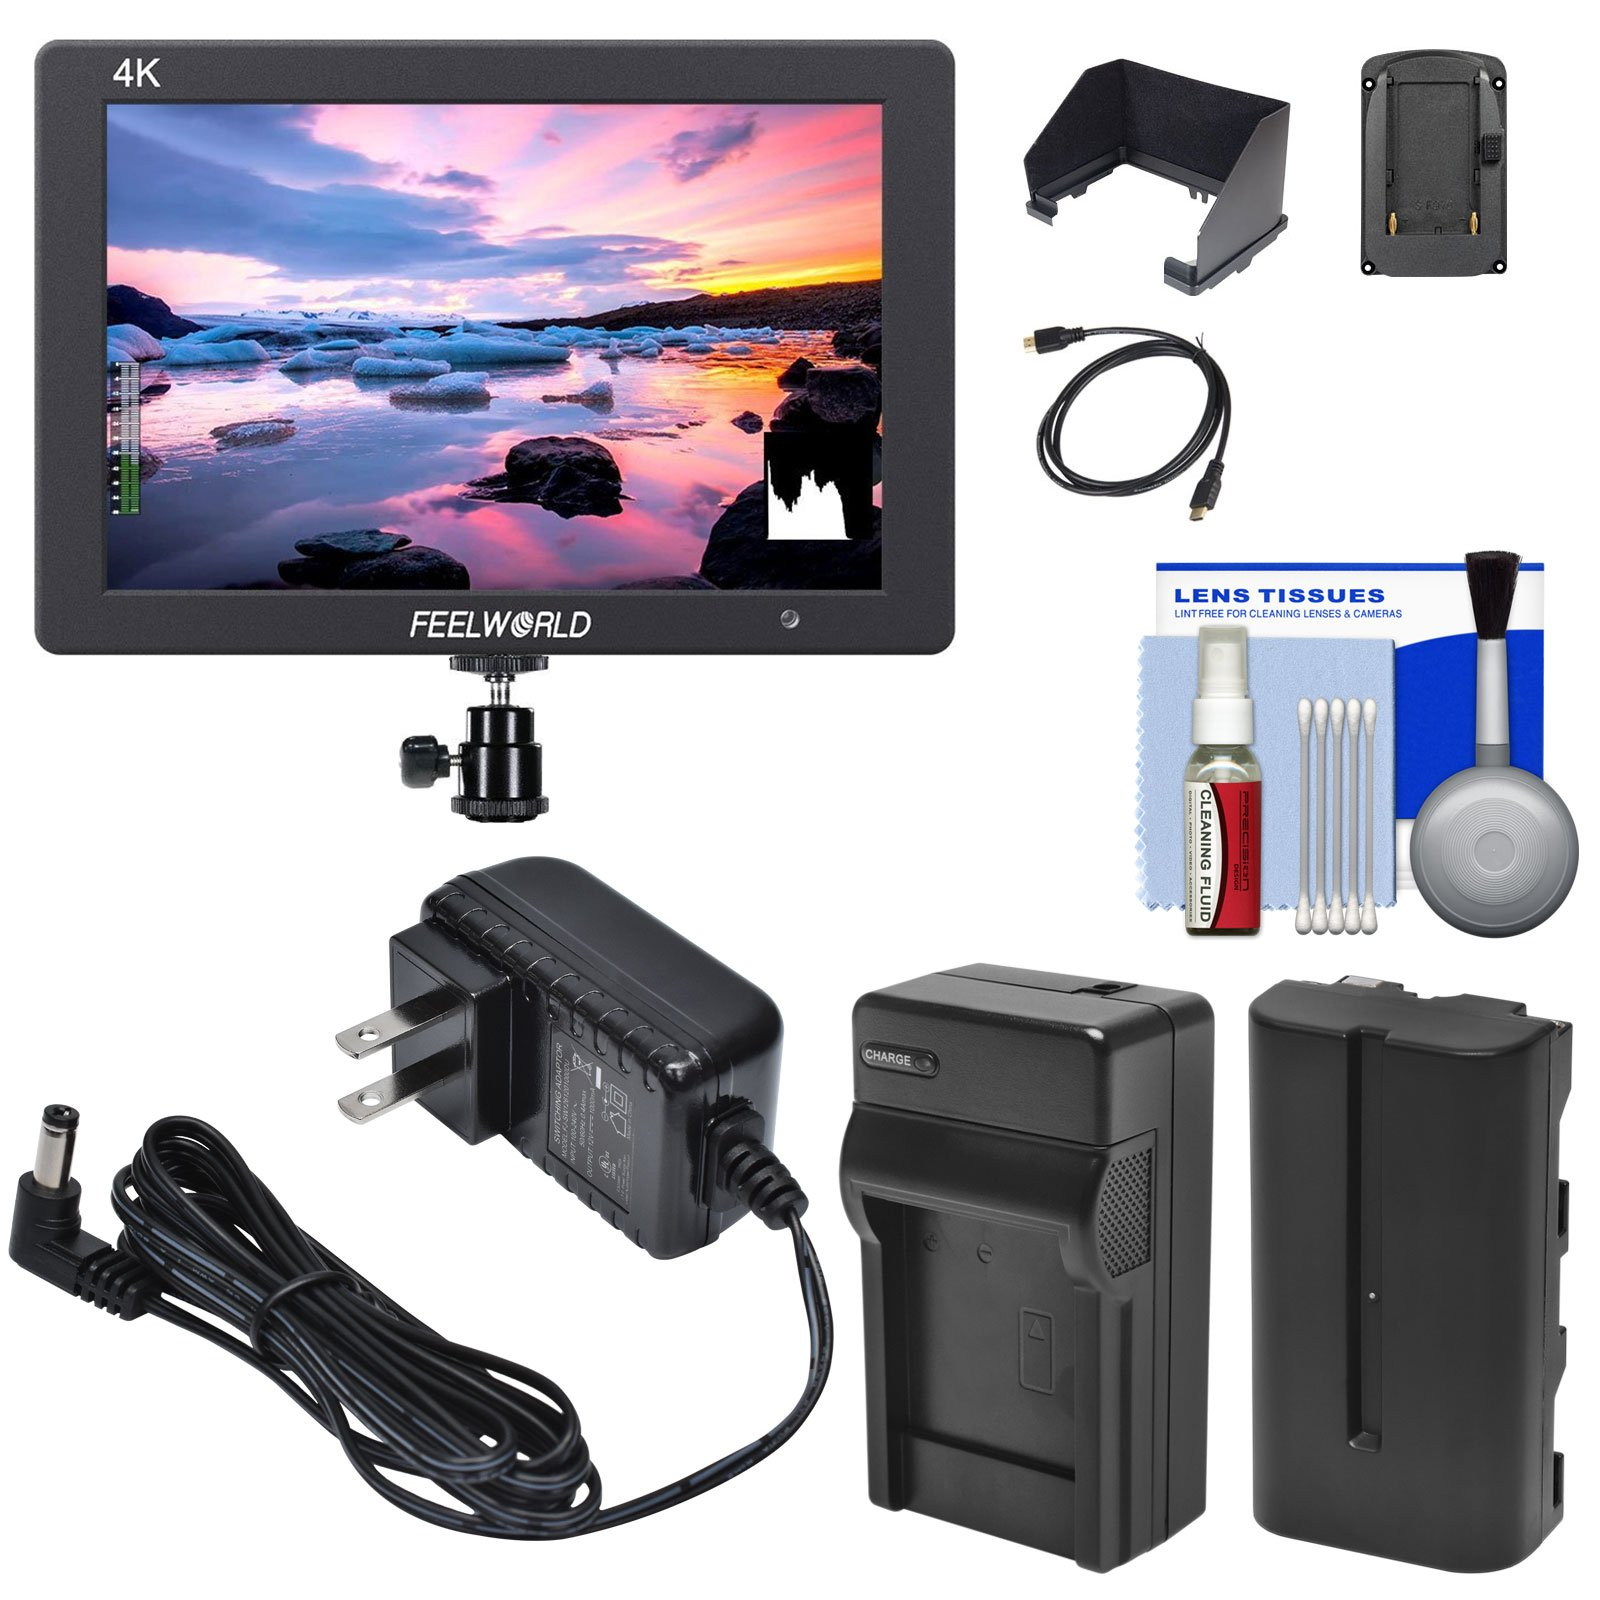 Feelworld T7 7-inch 4K 1920x1200 IPS On-Camera Field Monitor with Battery & Charger + AC Adapter + Sun Shade + HDMI Cable + Hot Shoe Mount + Kit